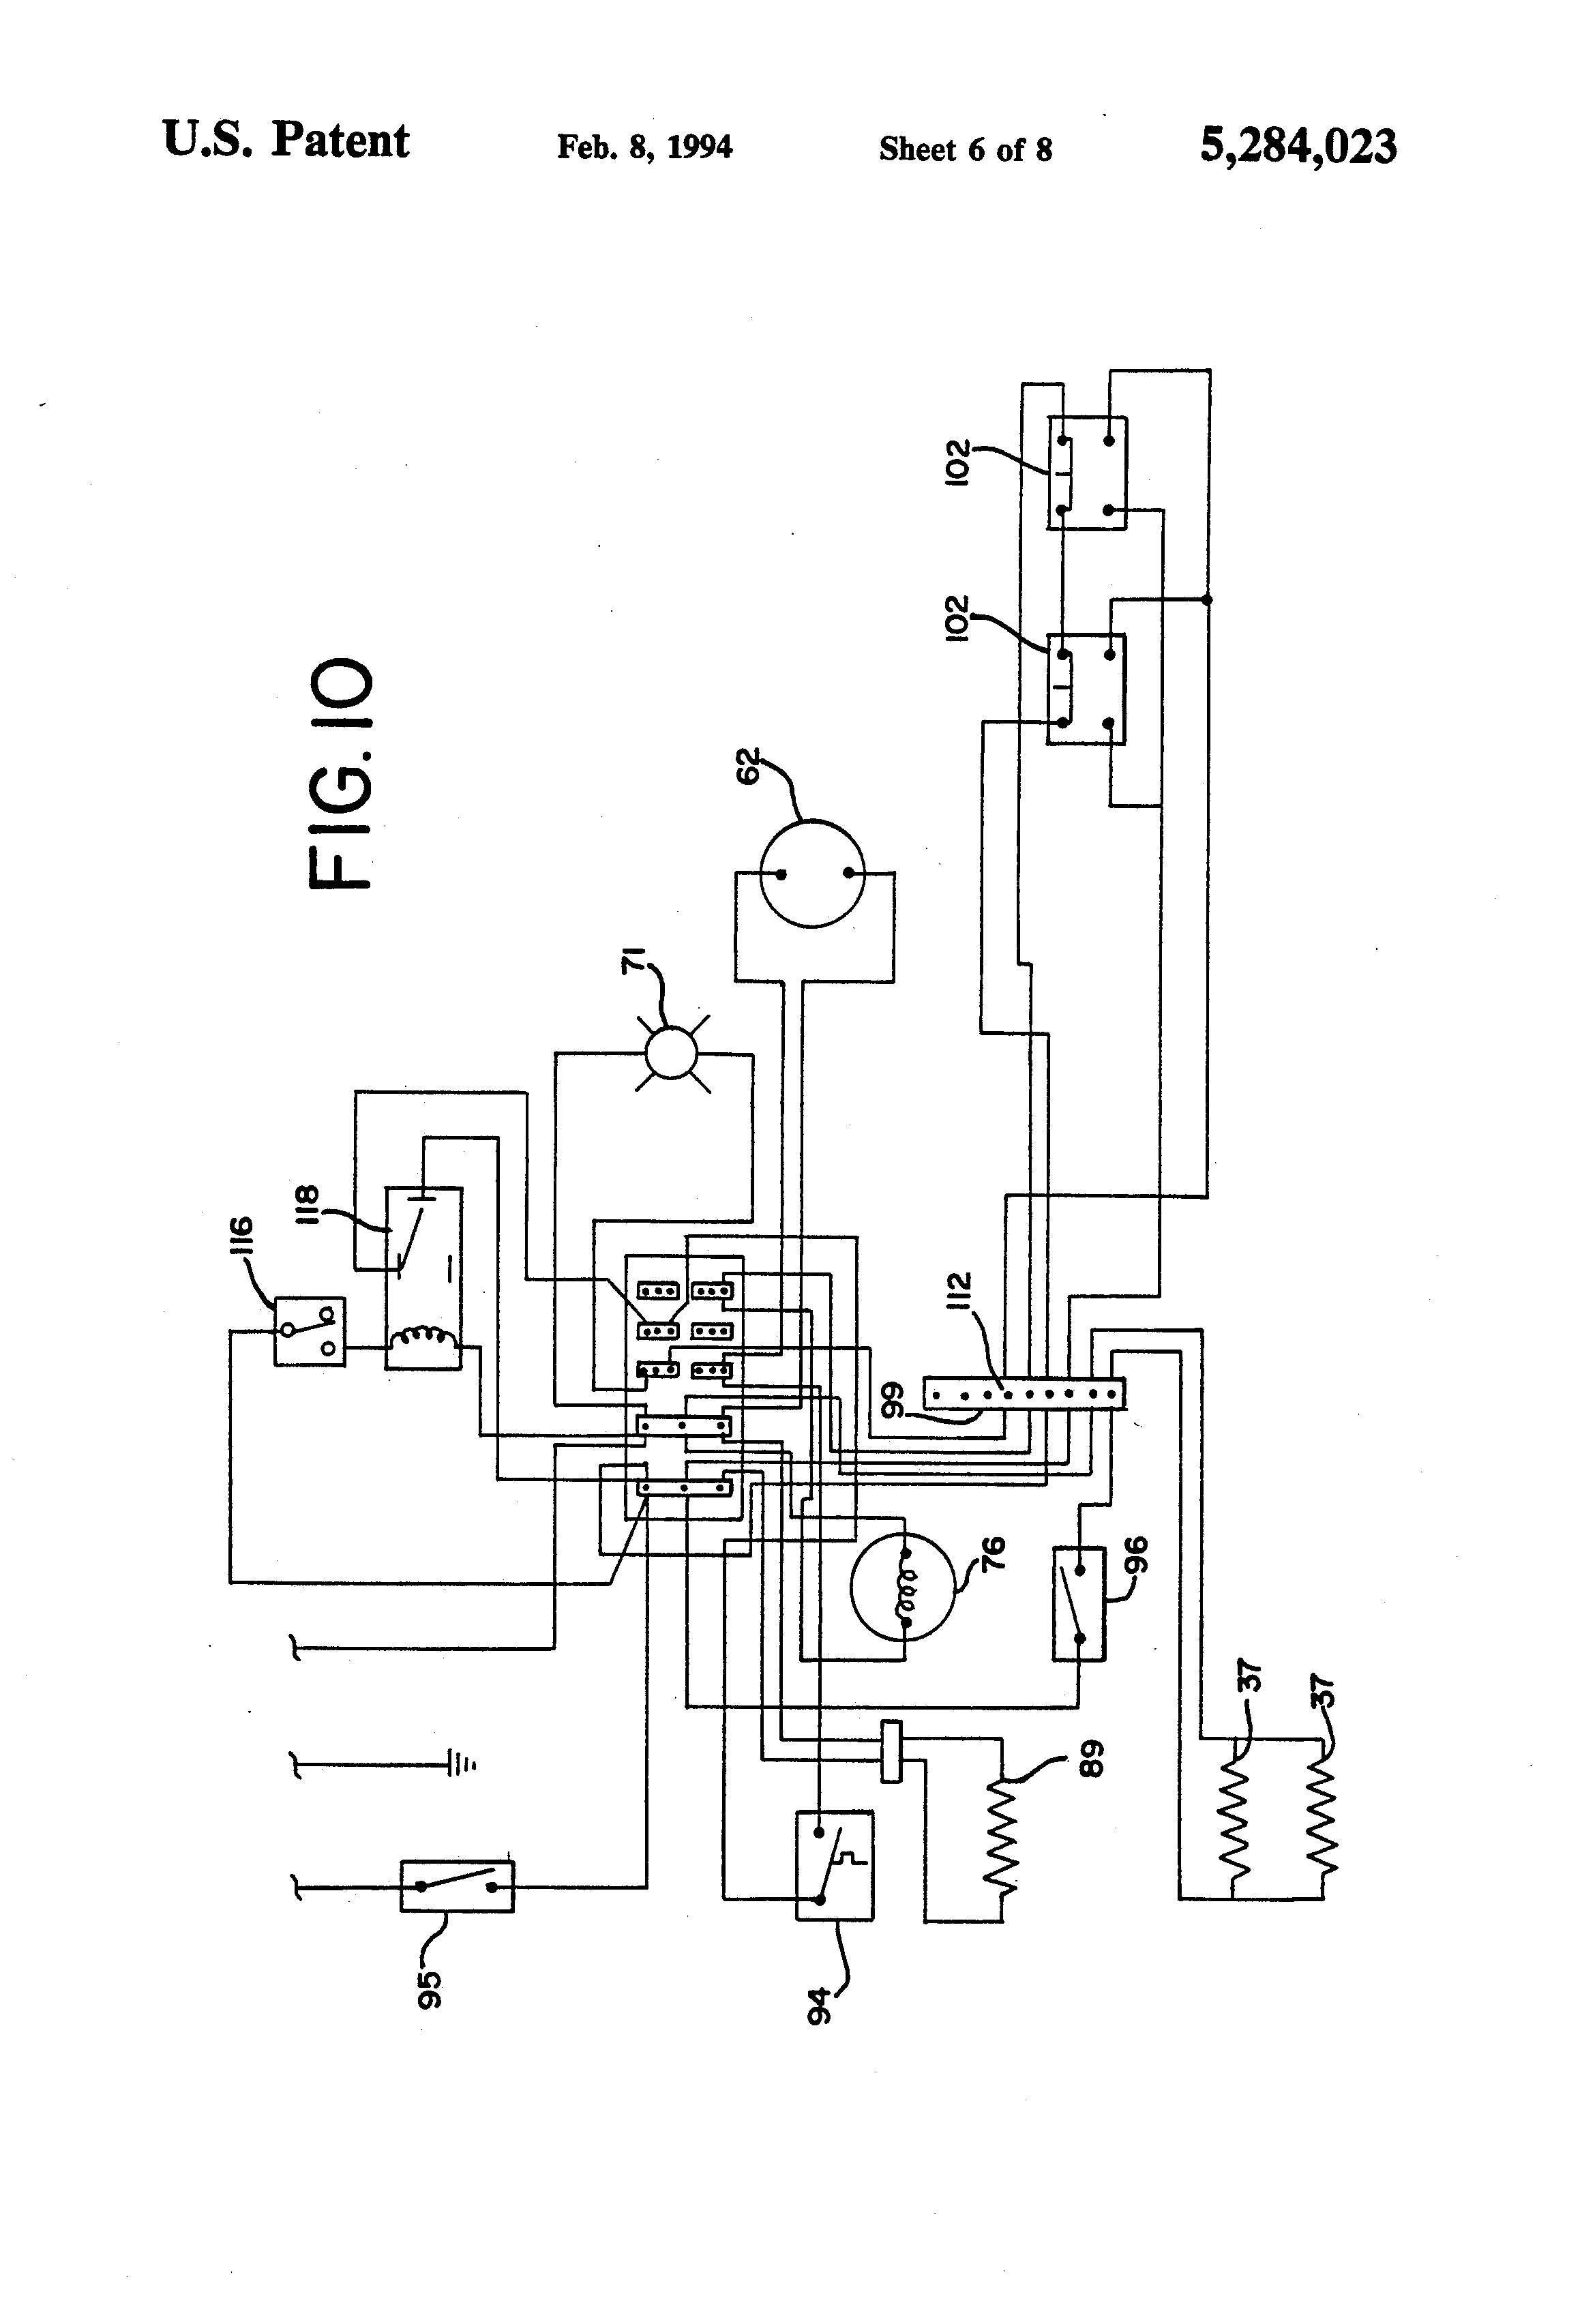 Defrost Termination Fan Delay Switch Wiring Diagram Download For Led